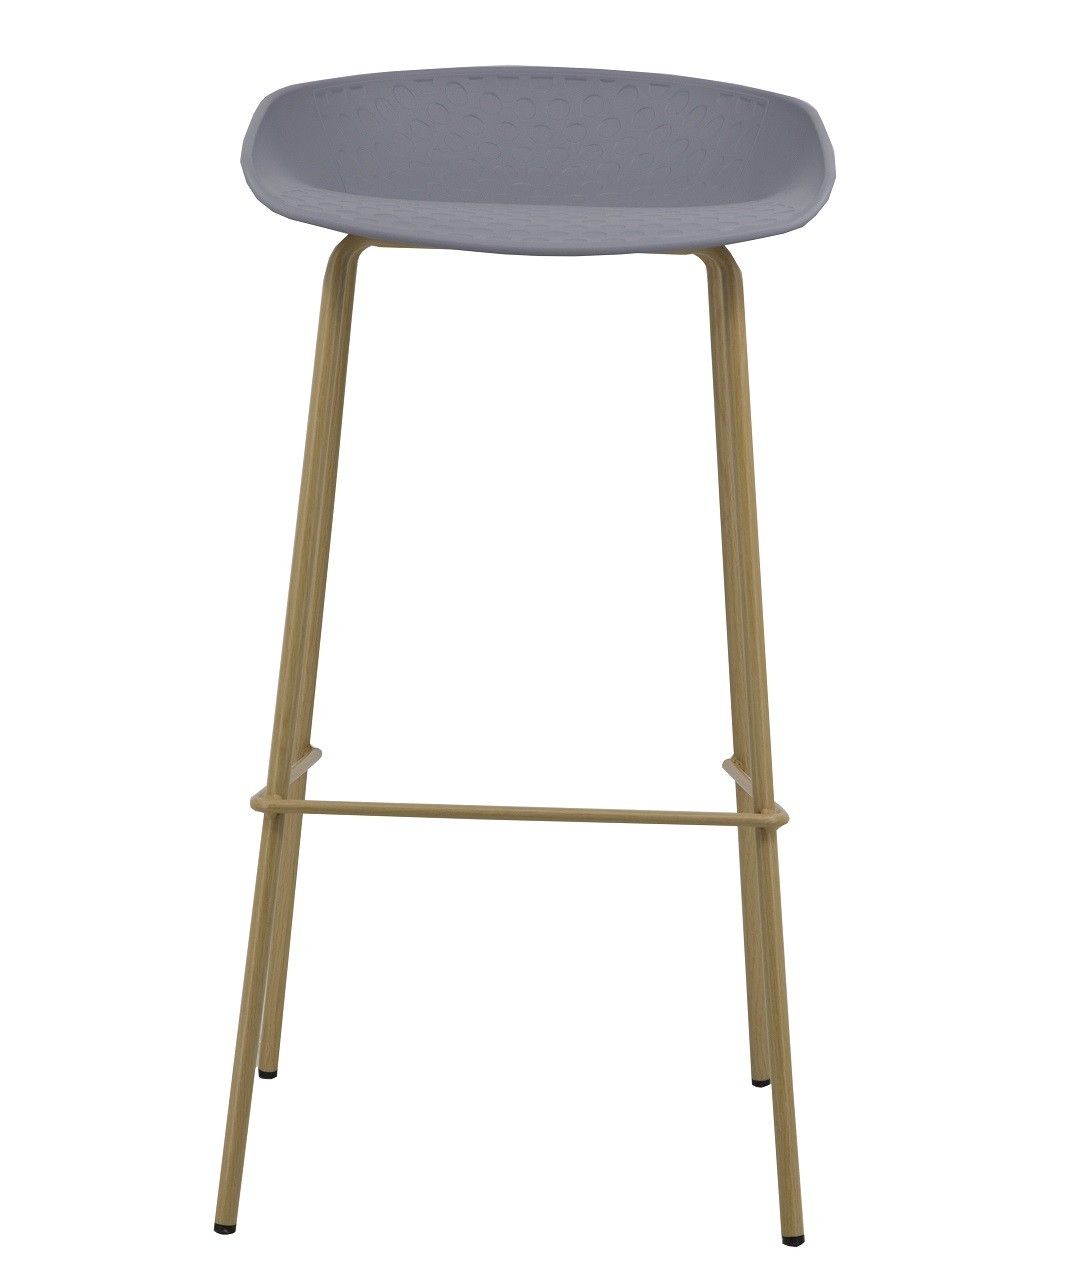 Stool LARIOS Metal Polypropylene Gray